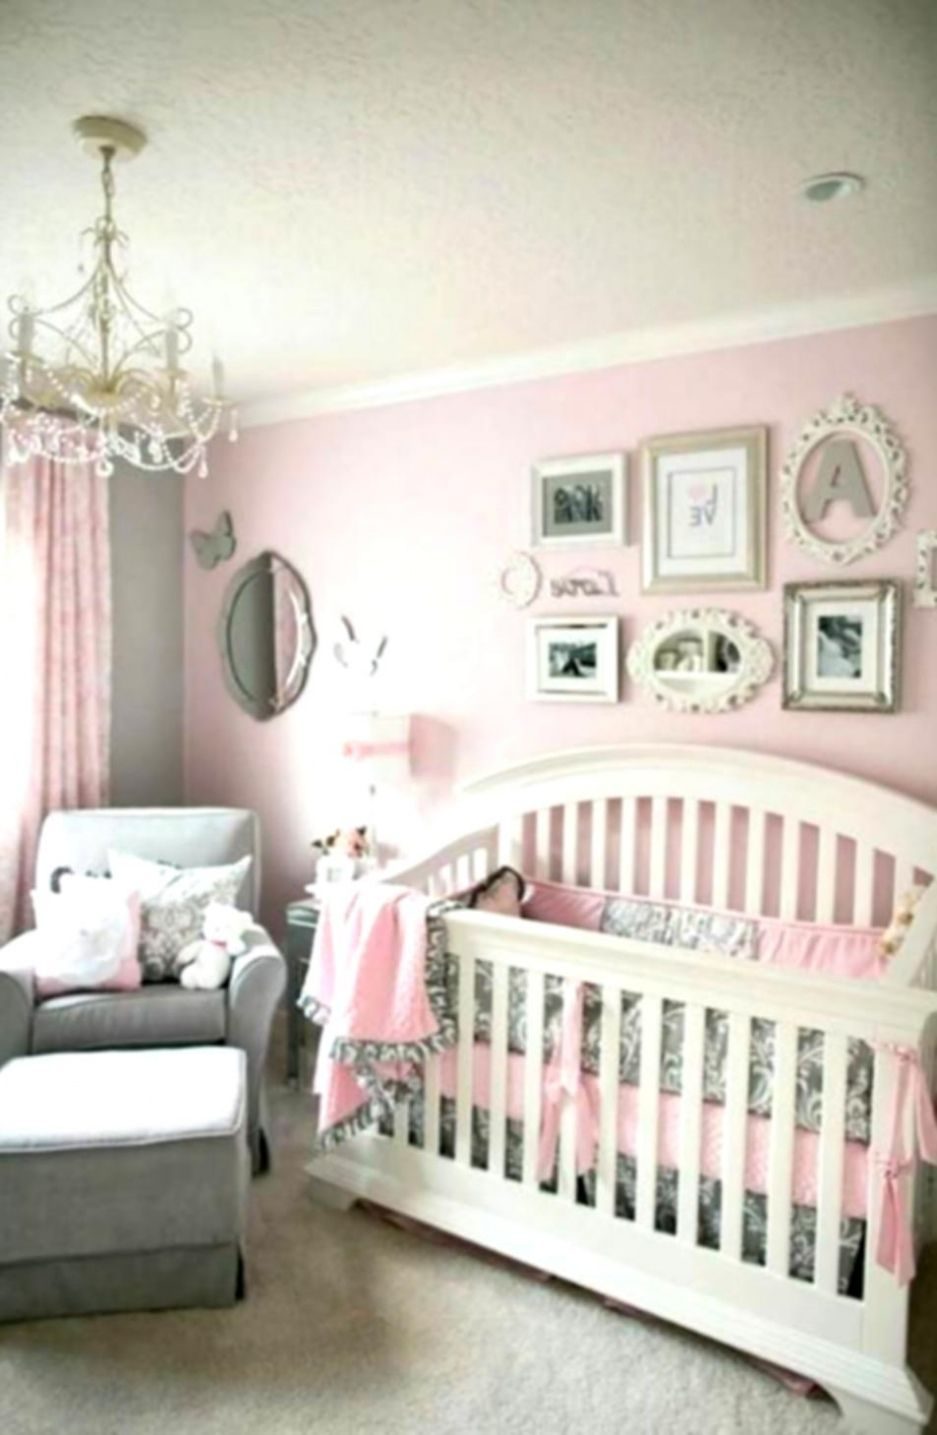 pin by hendro birowo on modern design low budget baby bedroom